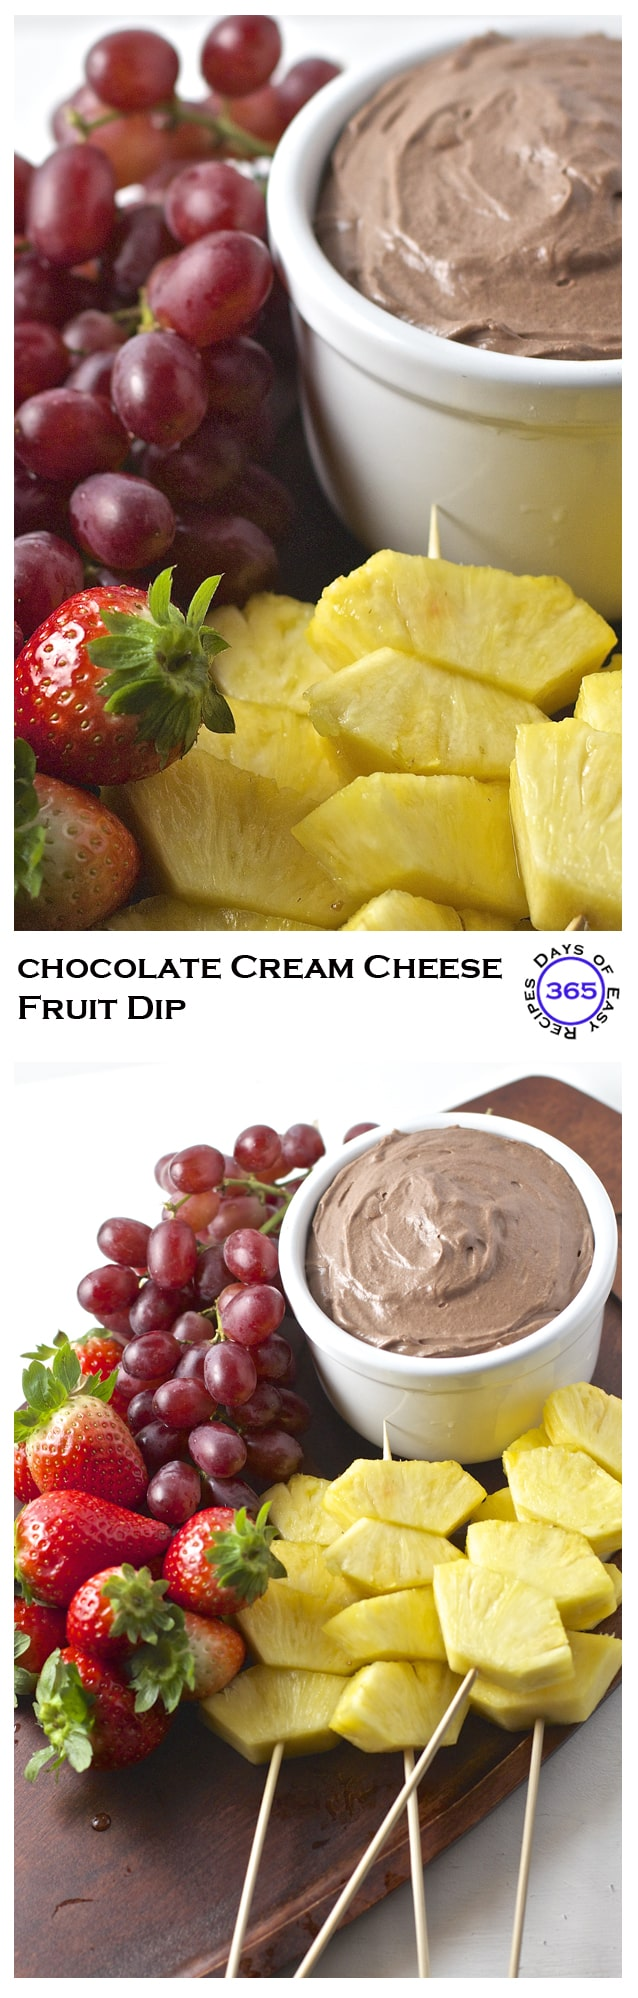 Chocolate Cream Cheese Fruit Dip | 365 Days of Easy Recipes